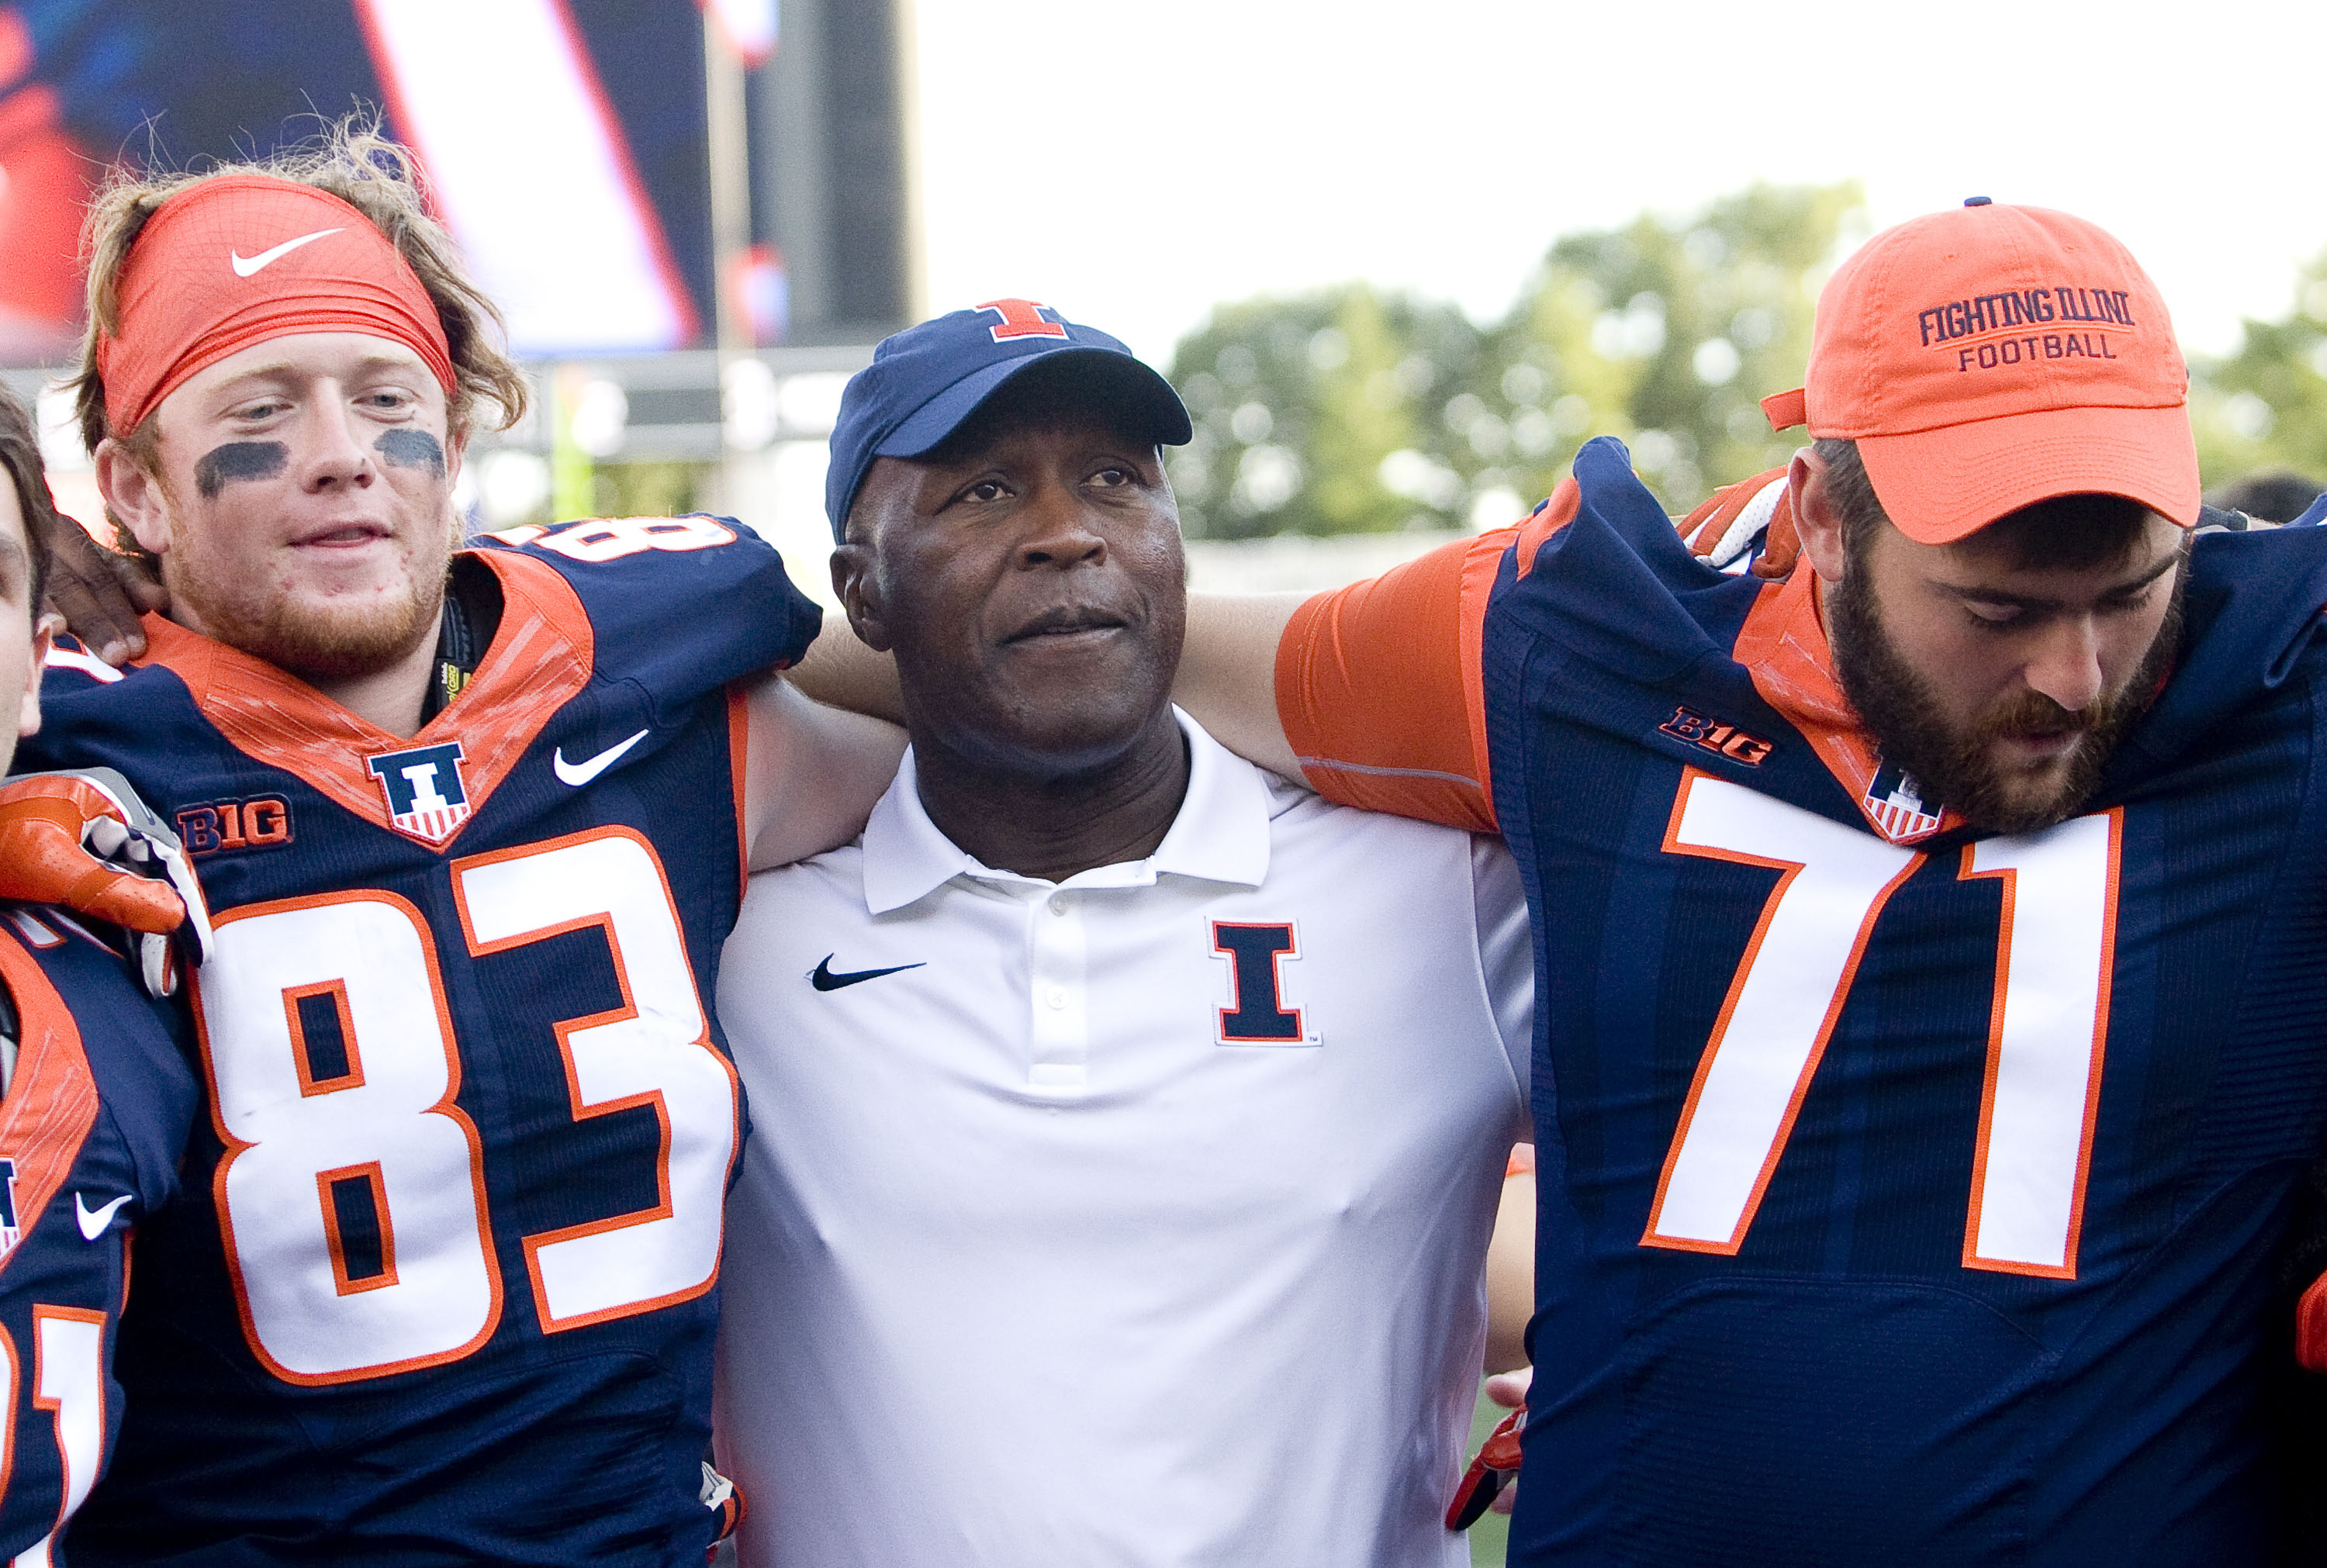 Illinois Fighting Illini wide receiver Samuel Harlib (82) and Illinois Fighting Illini offensive lineman Joe Spencer (71) celebrate with head coach Lovie Smith after the game against the Murray State Racers at Memorial Stadium.